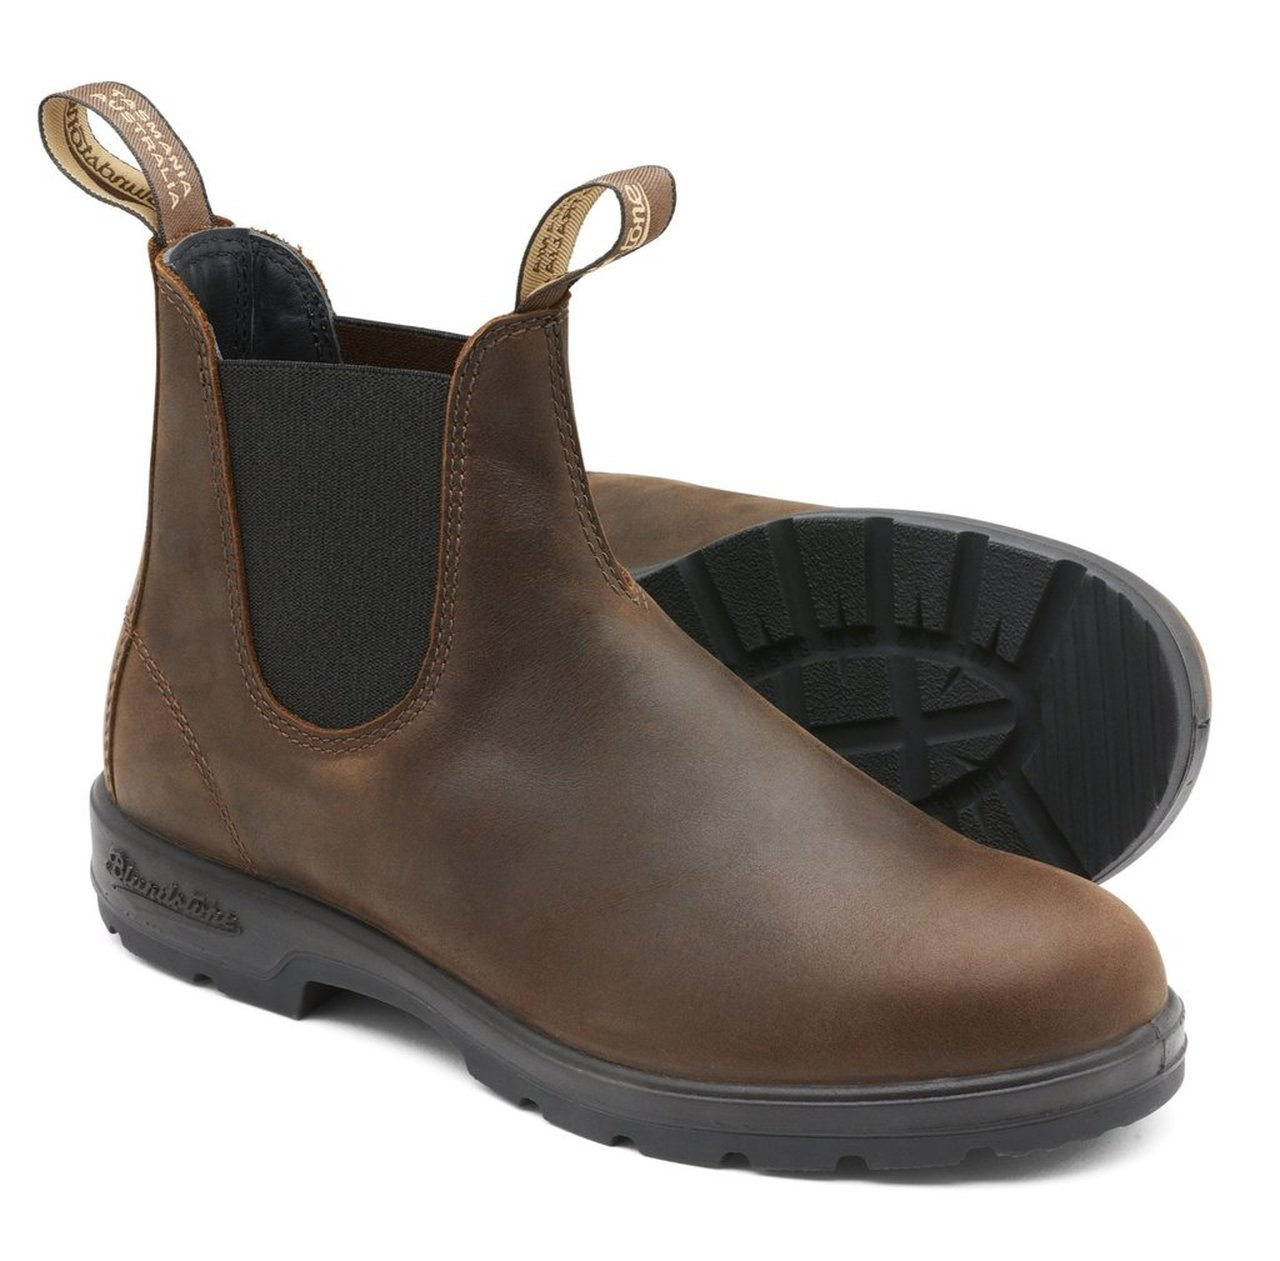 Blundstone Blundstone 1609 Leather Lined-Antique Brown